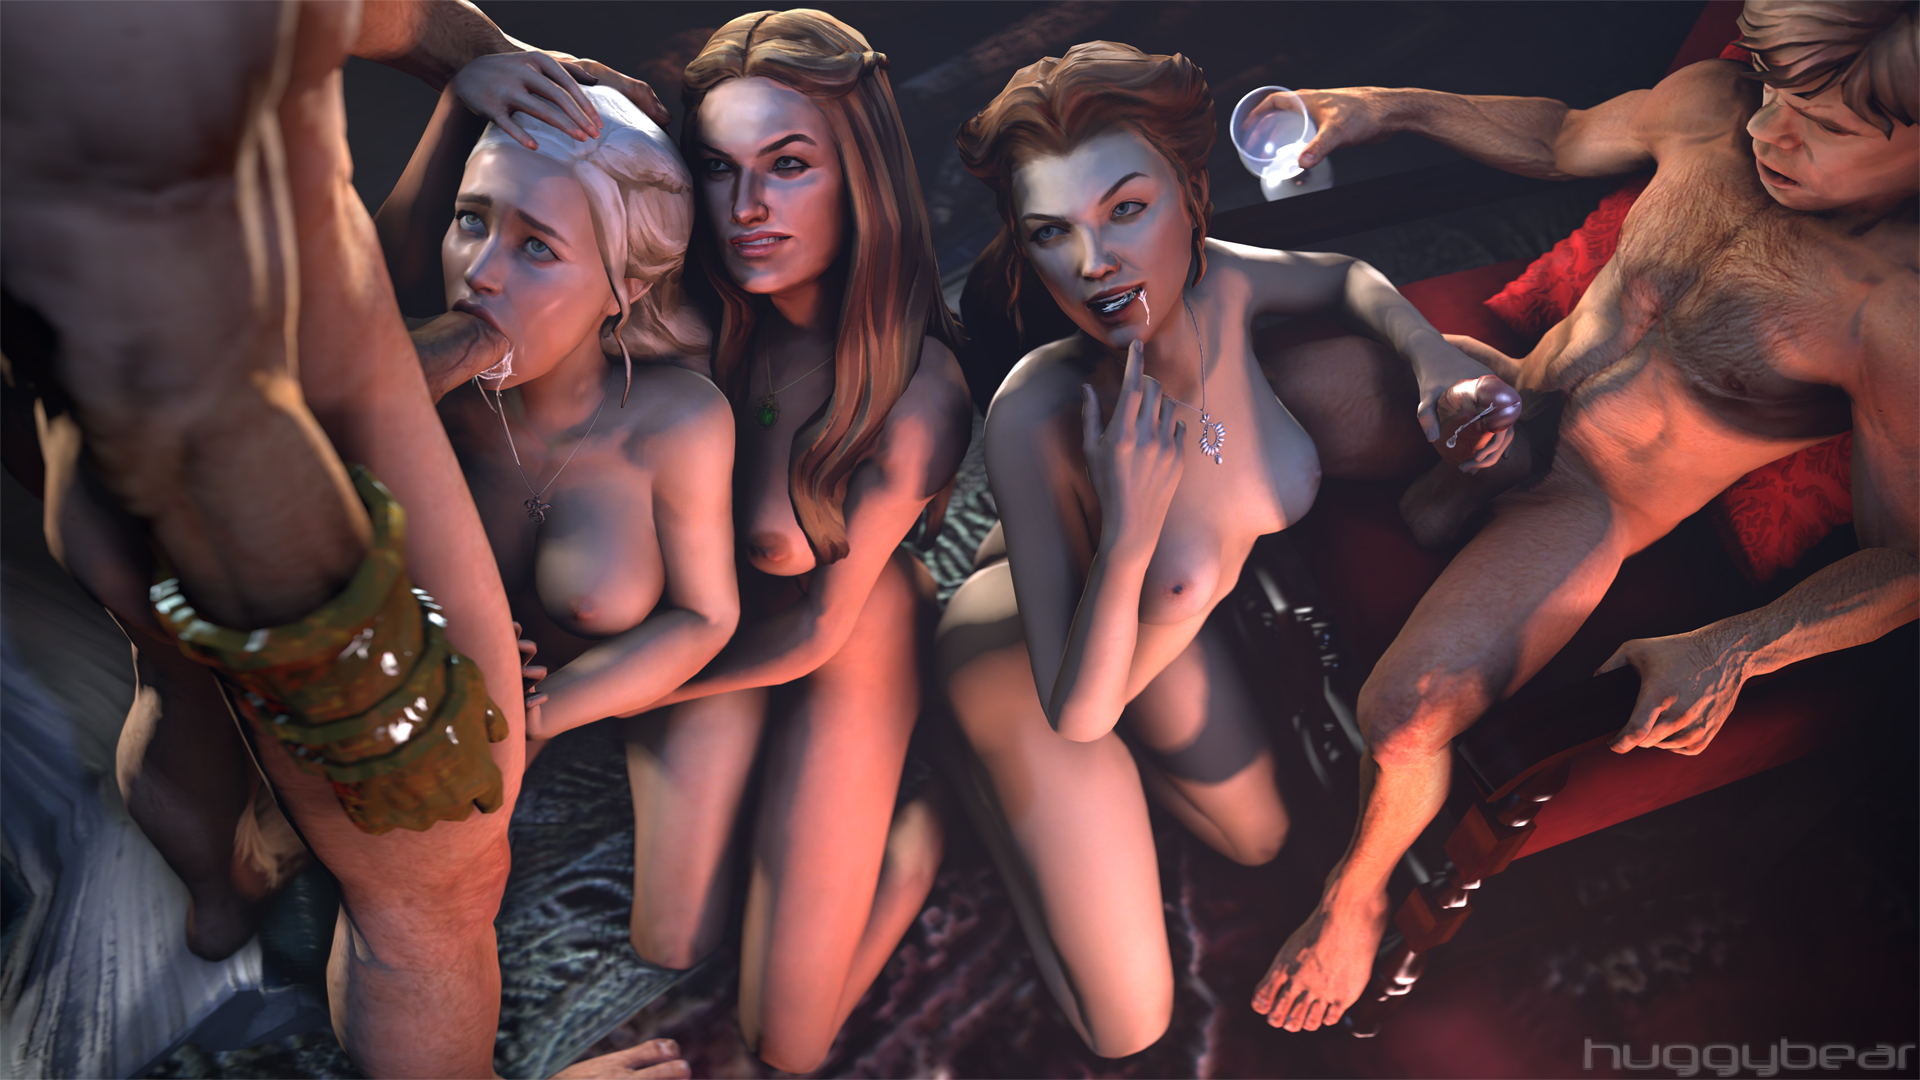 Game of thrones rule 34 hentai adult gallery